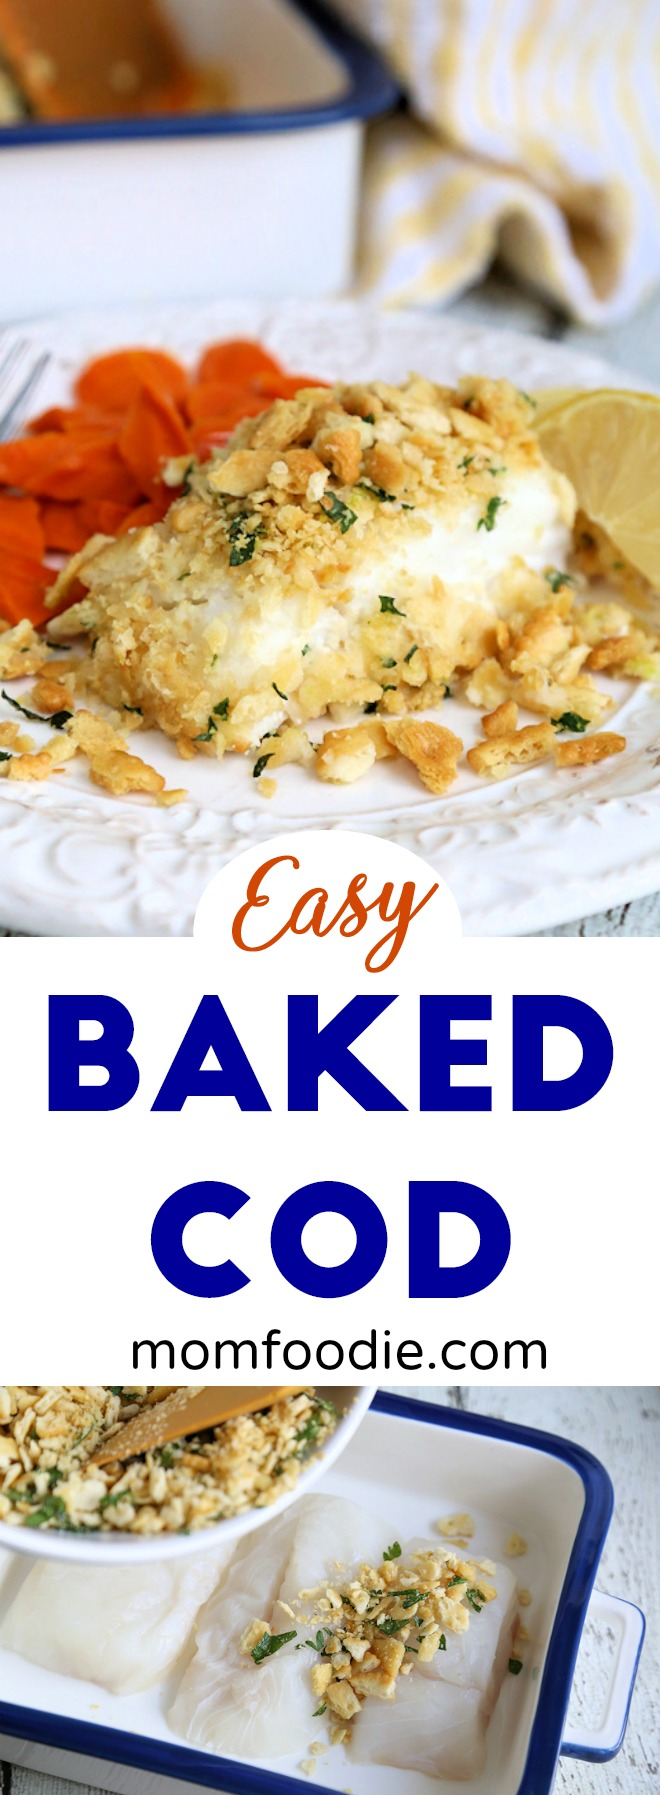 Easy baked cod recipe with ritz cracker topping mom foodie for Baked cod fish recipes